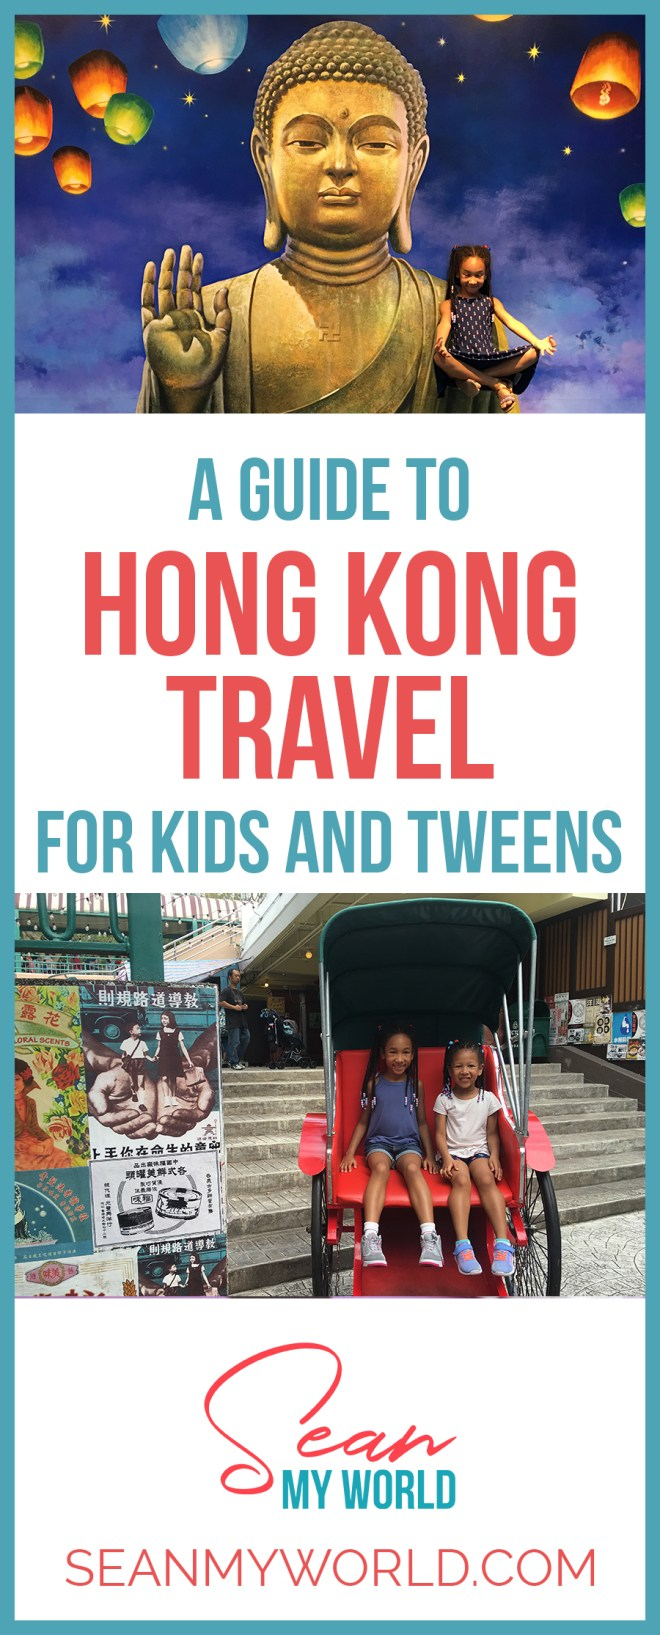 I'm excited to share with you my Hong Kong travel video! Hong Kong is where my mom is originally from, and this was our first time visiting her hometown.